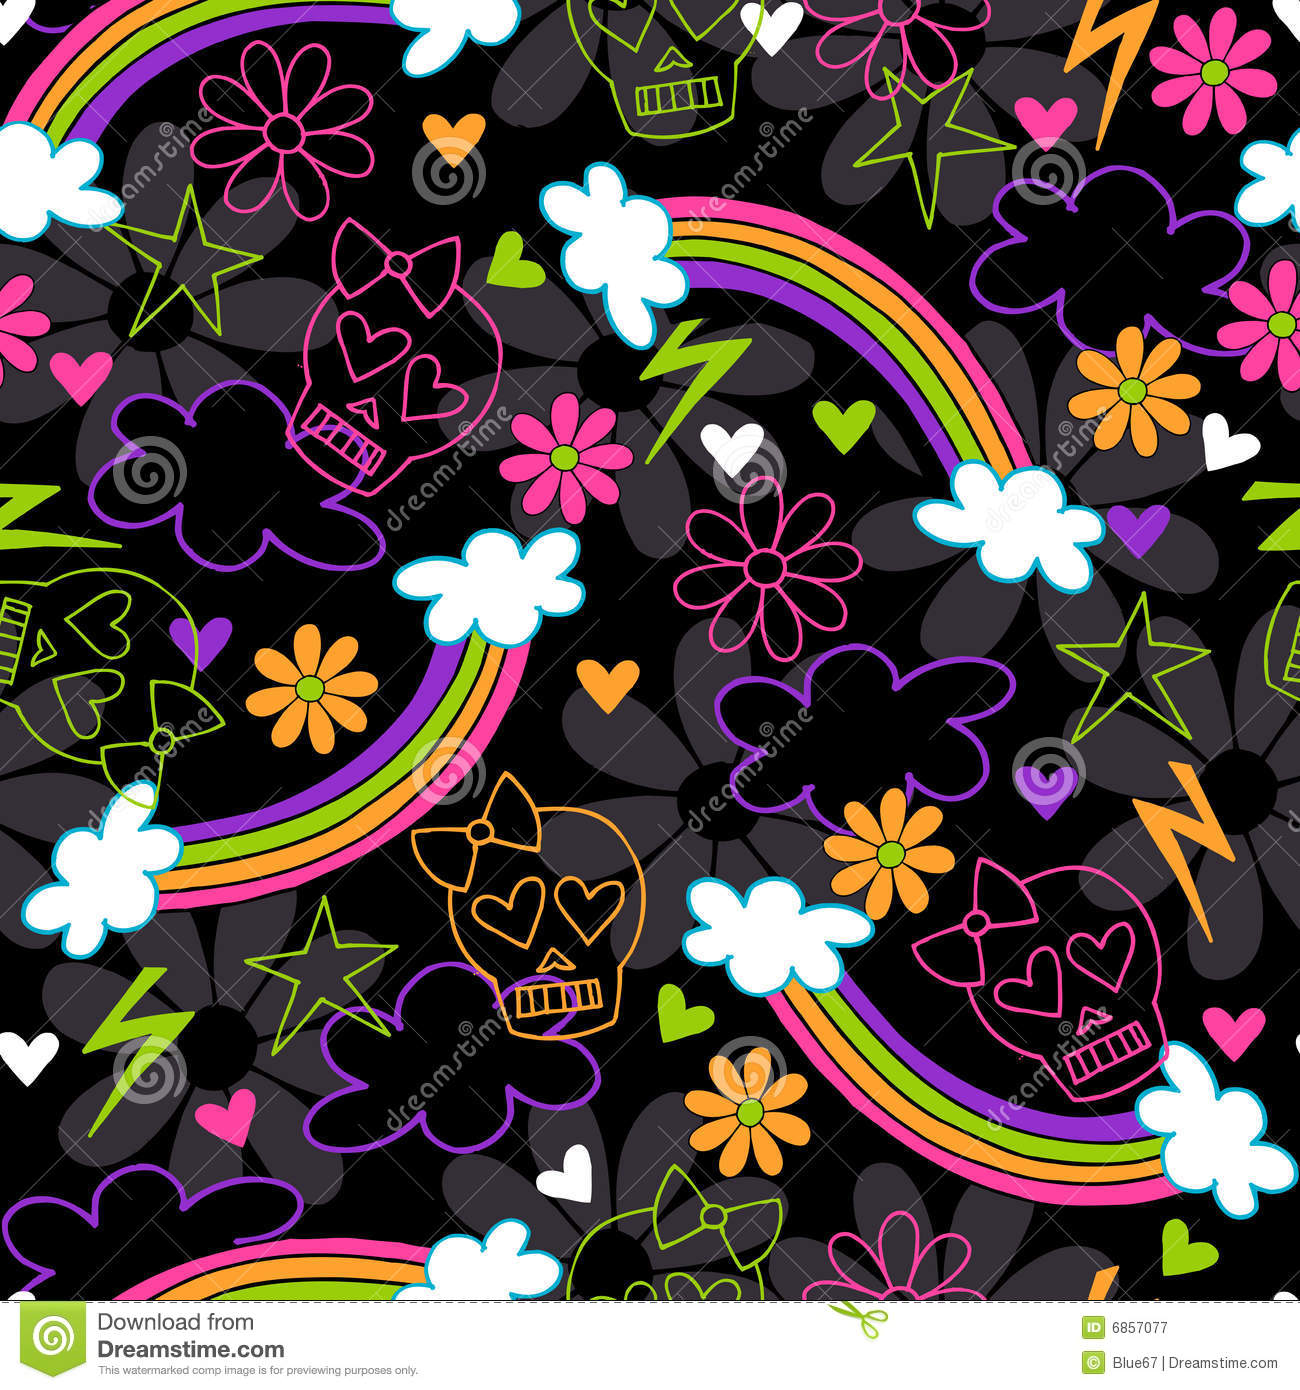 Girly skulls rainbow seamless repeat pattern stock vector girly skulls rainbow seamless repeat pattern voltagebd Choice Image